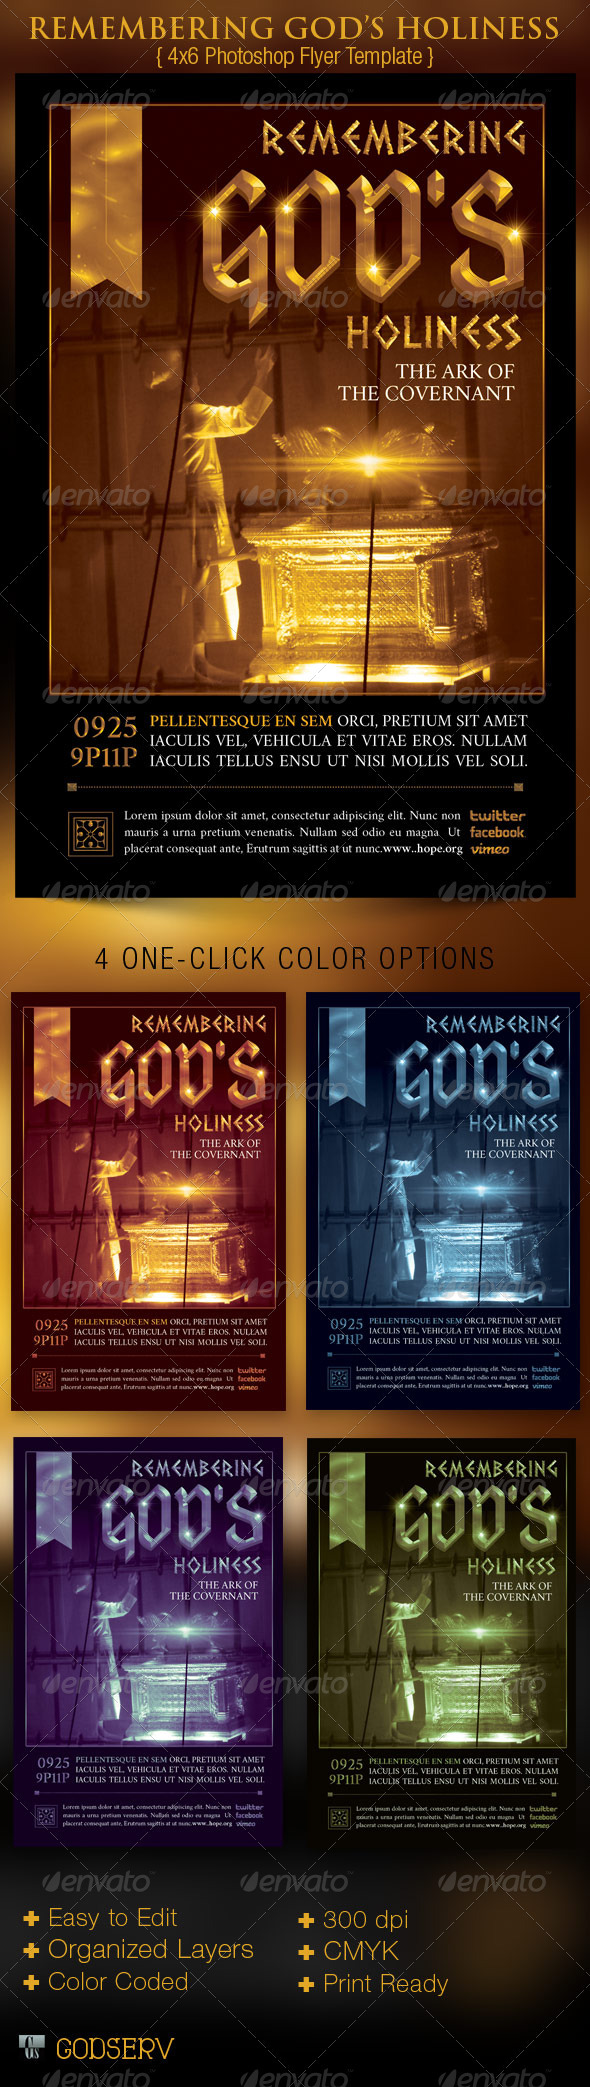 Holiness Church Flyer Template - Church Flyers